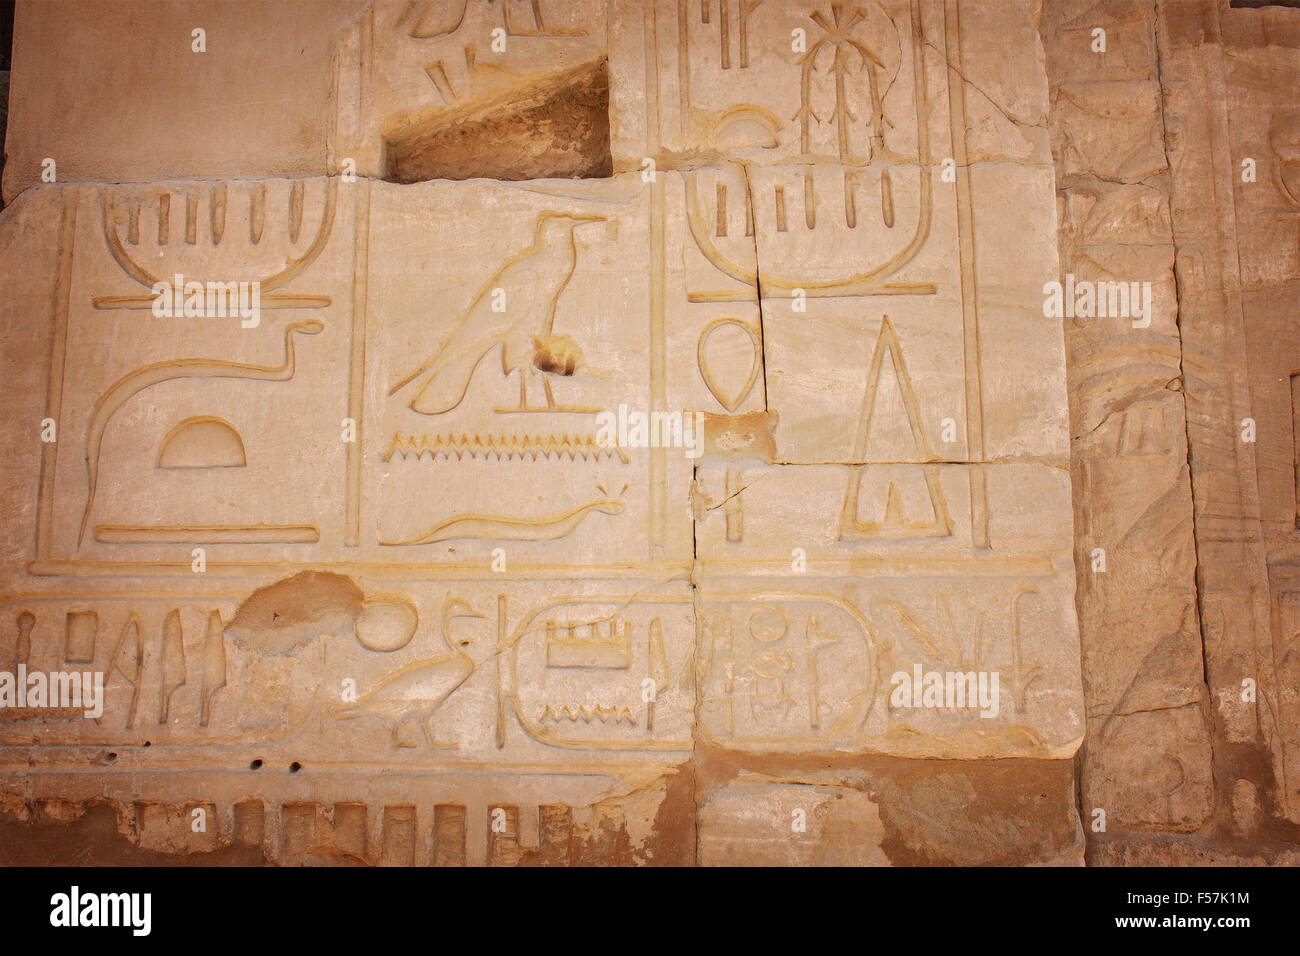 Image of carved images at the temple of Karnak, Egypt. - Stock Image